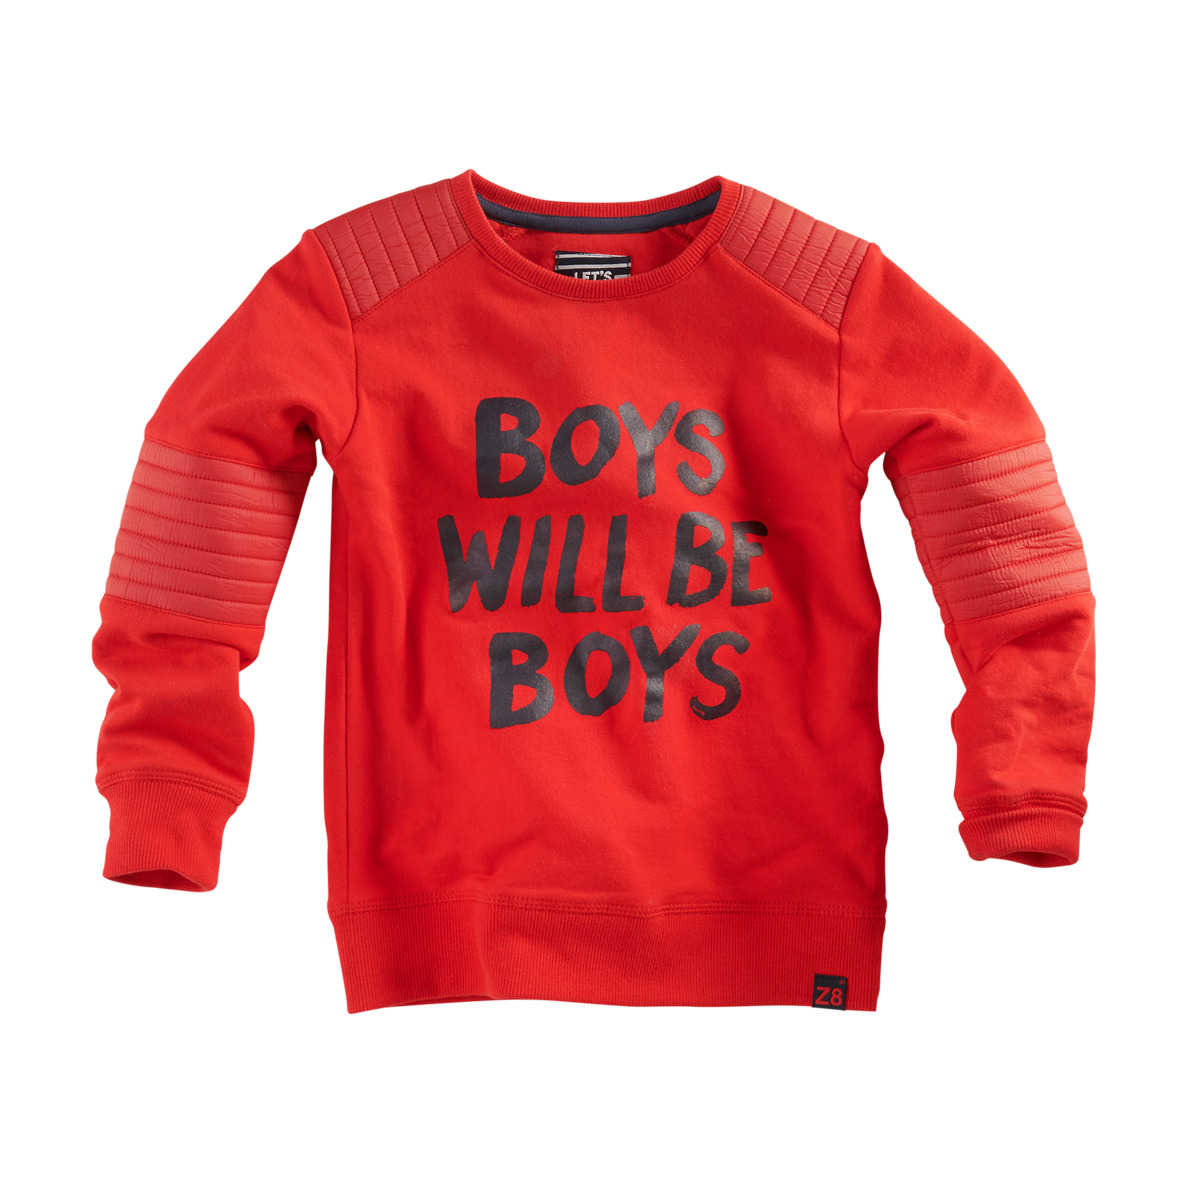 Z8 Kinderkleding.Z8 Sweater Basilis Red Pepper Koters Baby En Kinderkleding